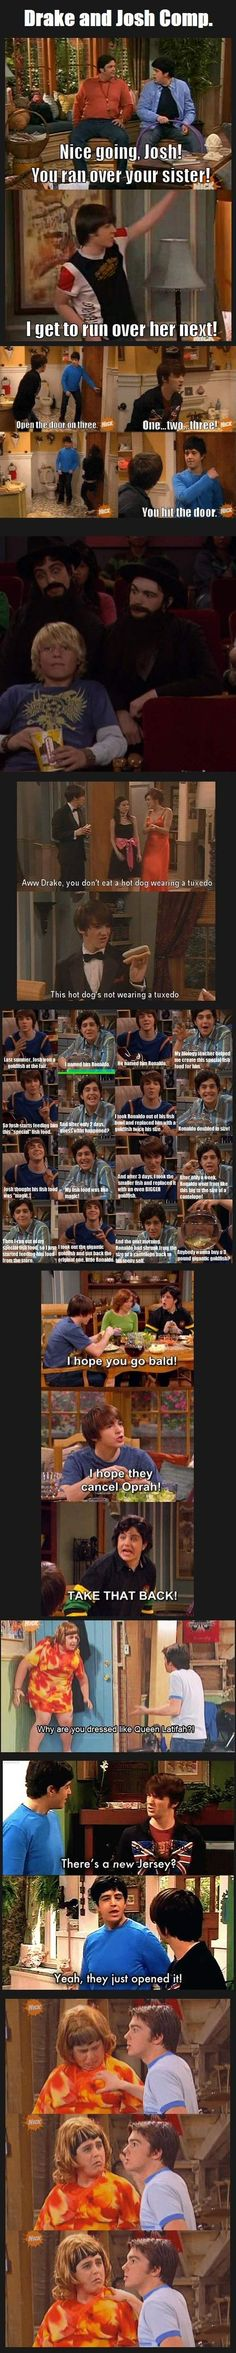 Drake and Josh. One of the best shows ever.